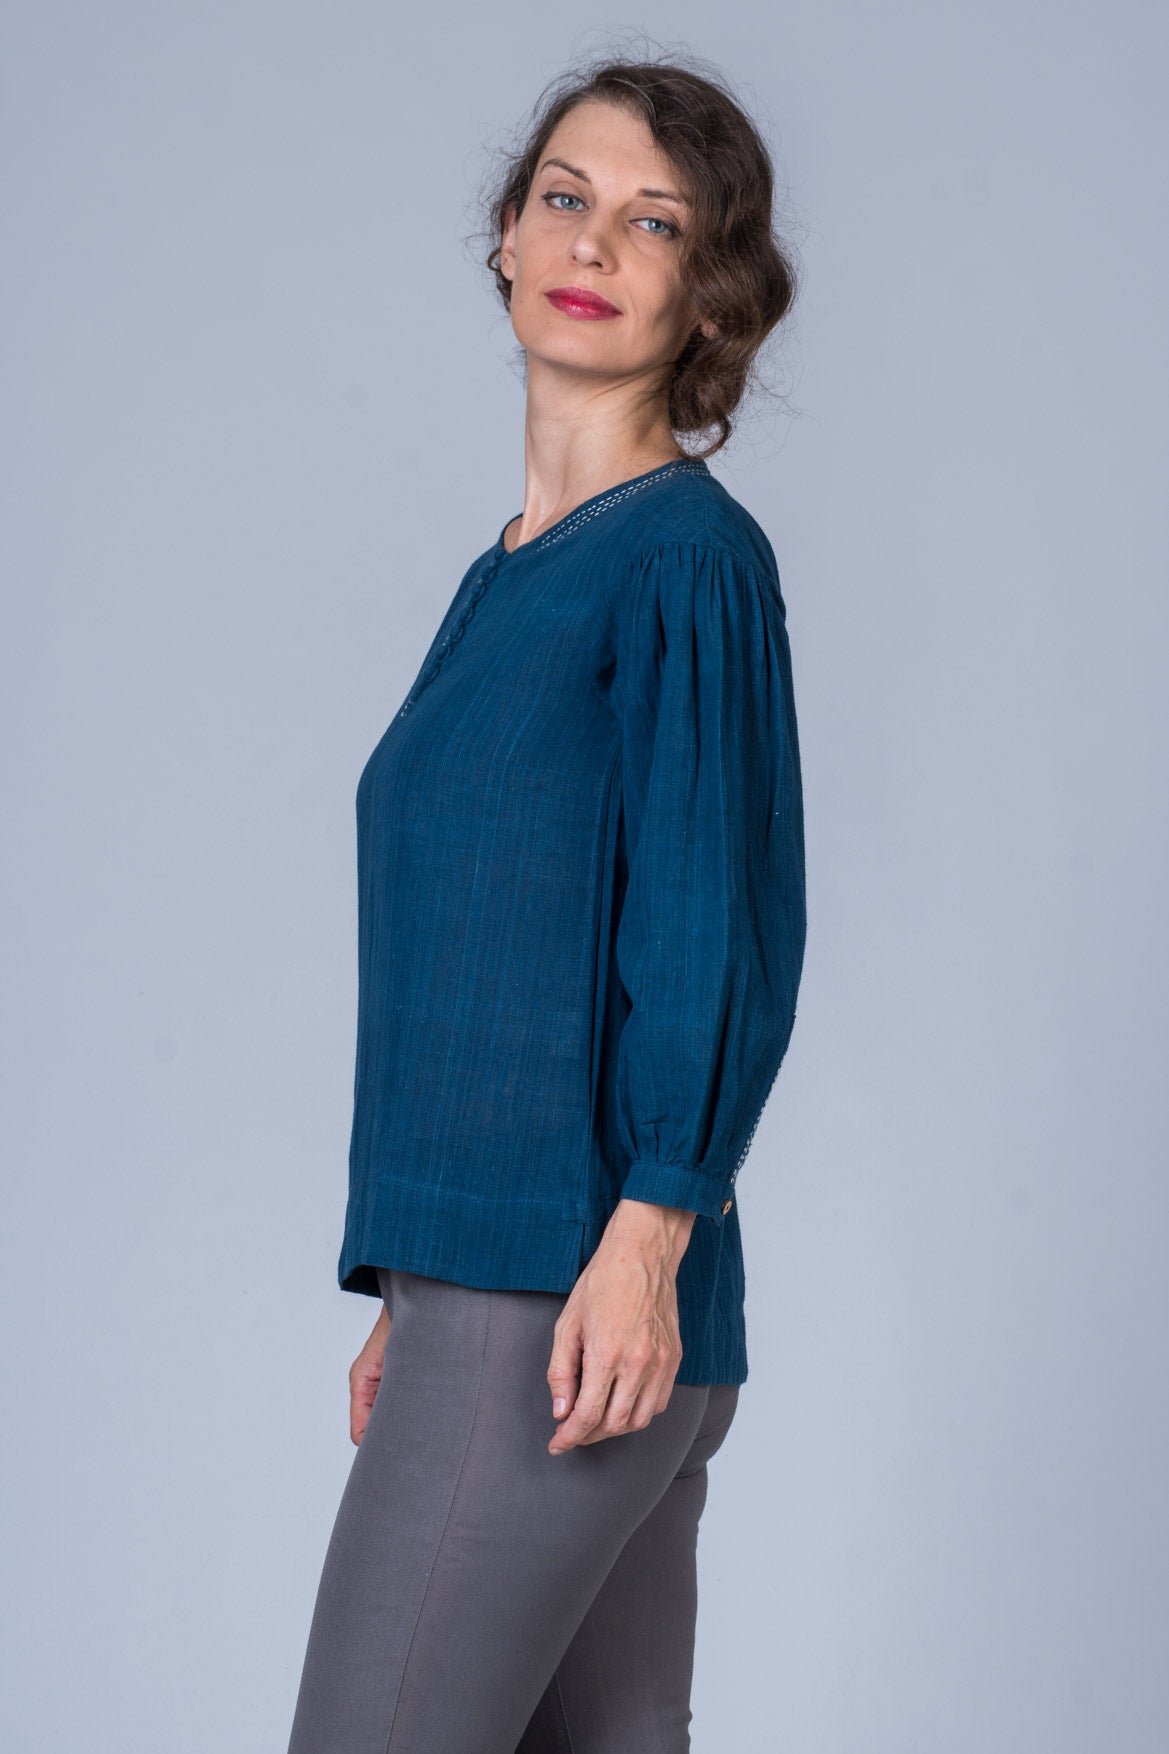 Indigo Dyed Handwoven Top - WHICH